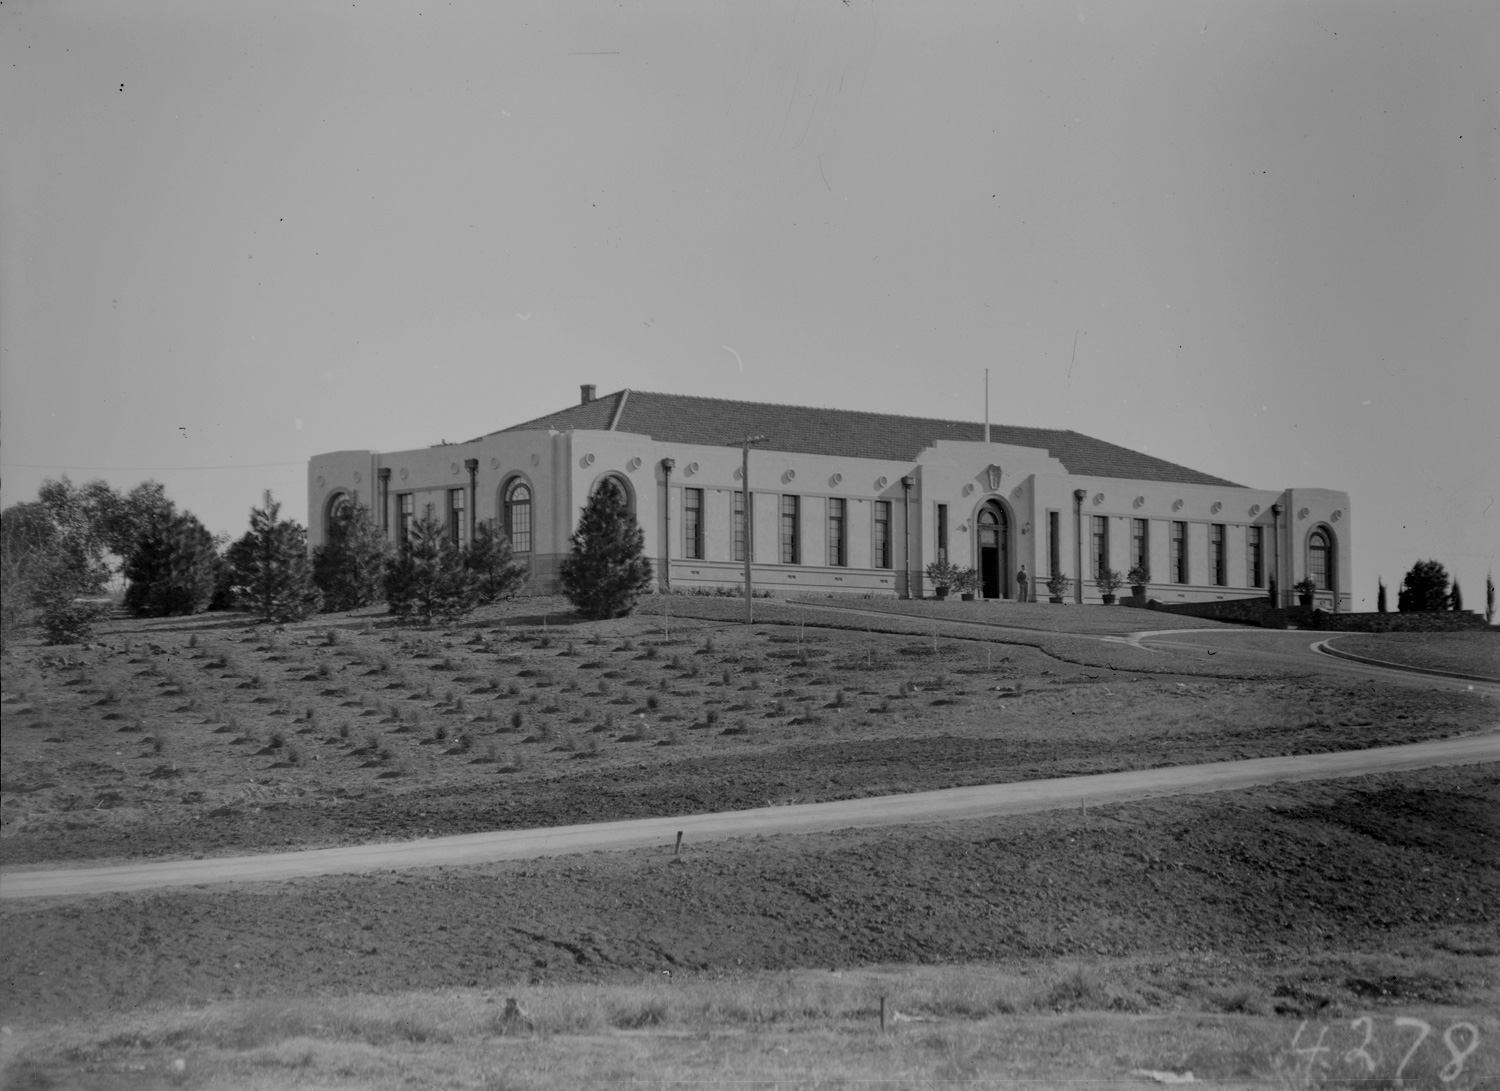 Image of Forestry House in Canberra when first built